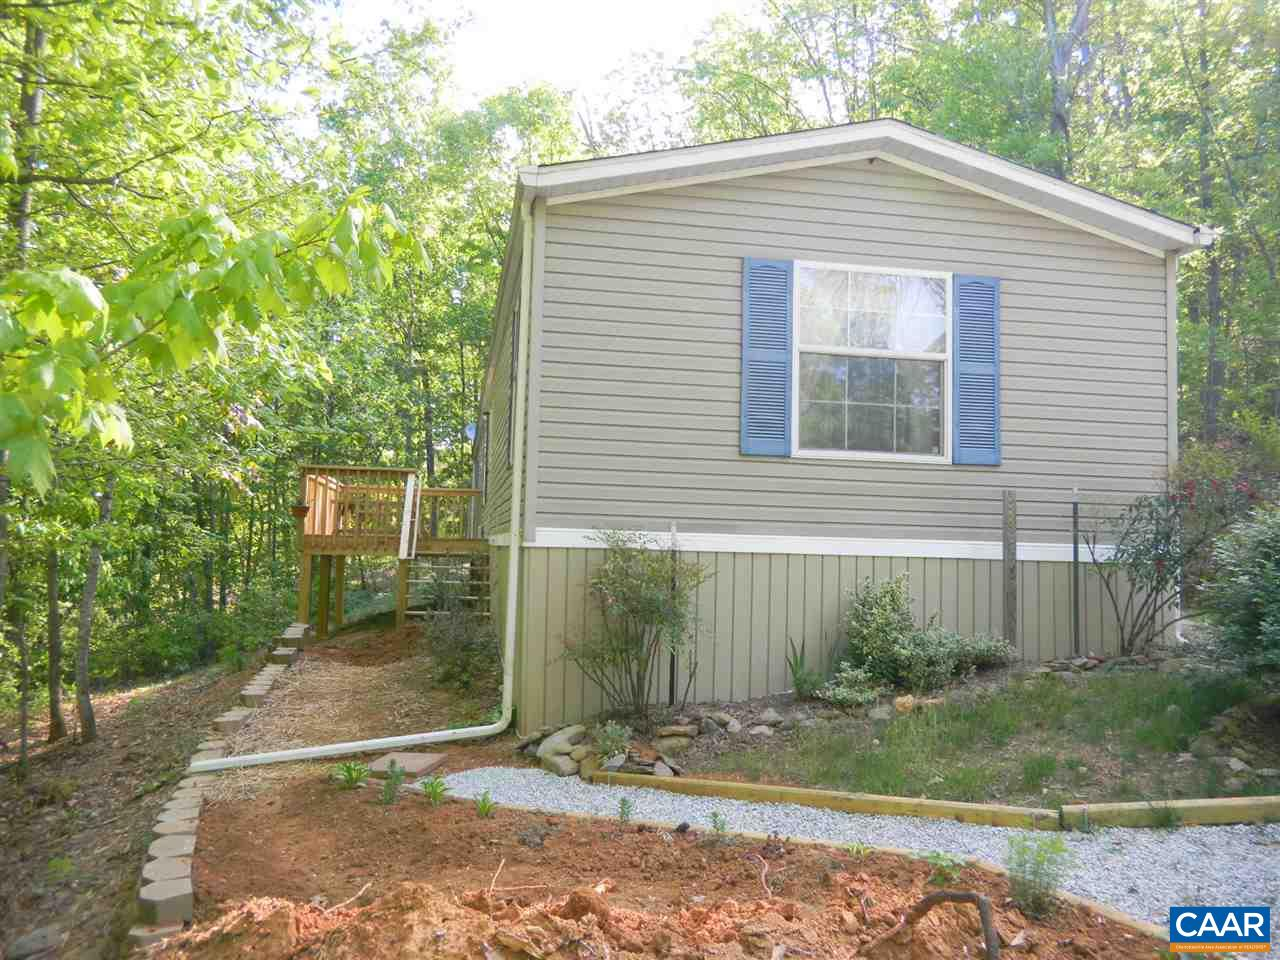 home for sale , MLS #570993, 34 Archery Ln